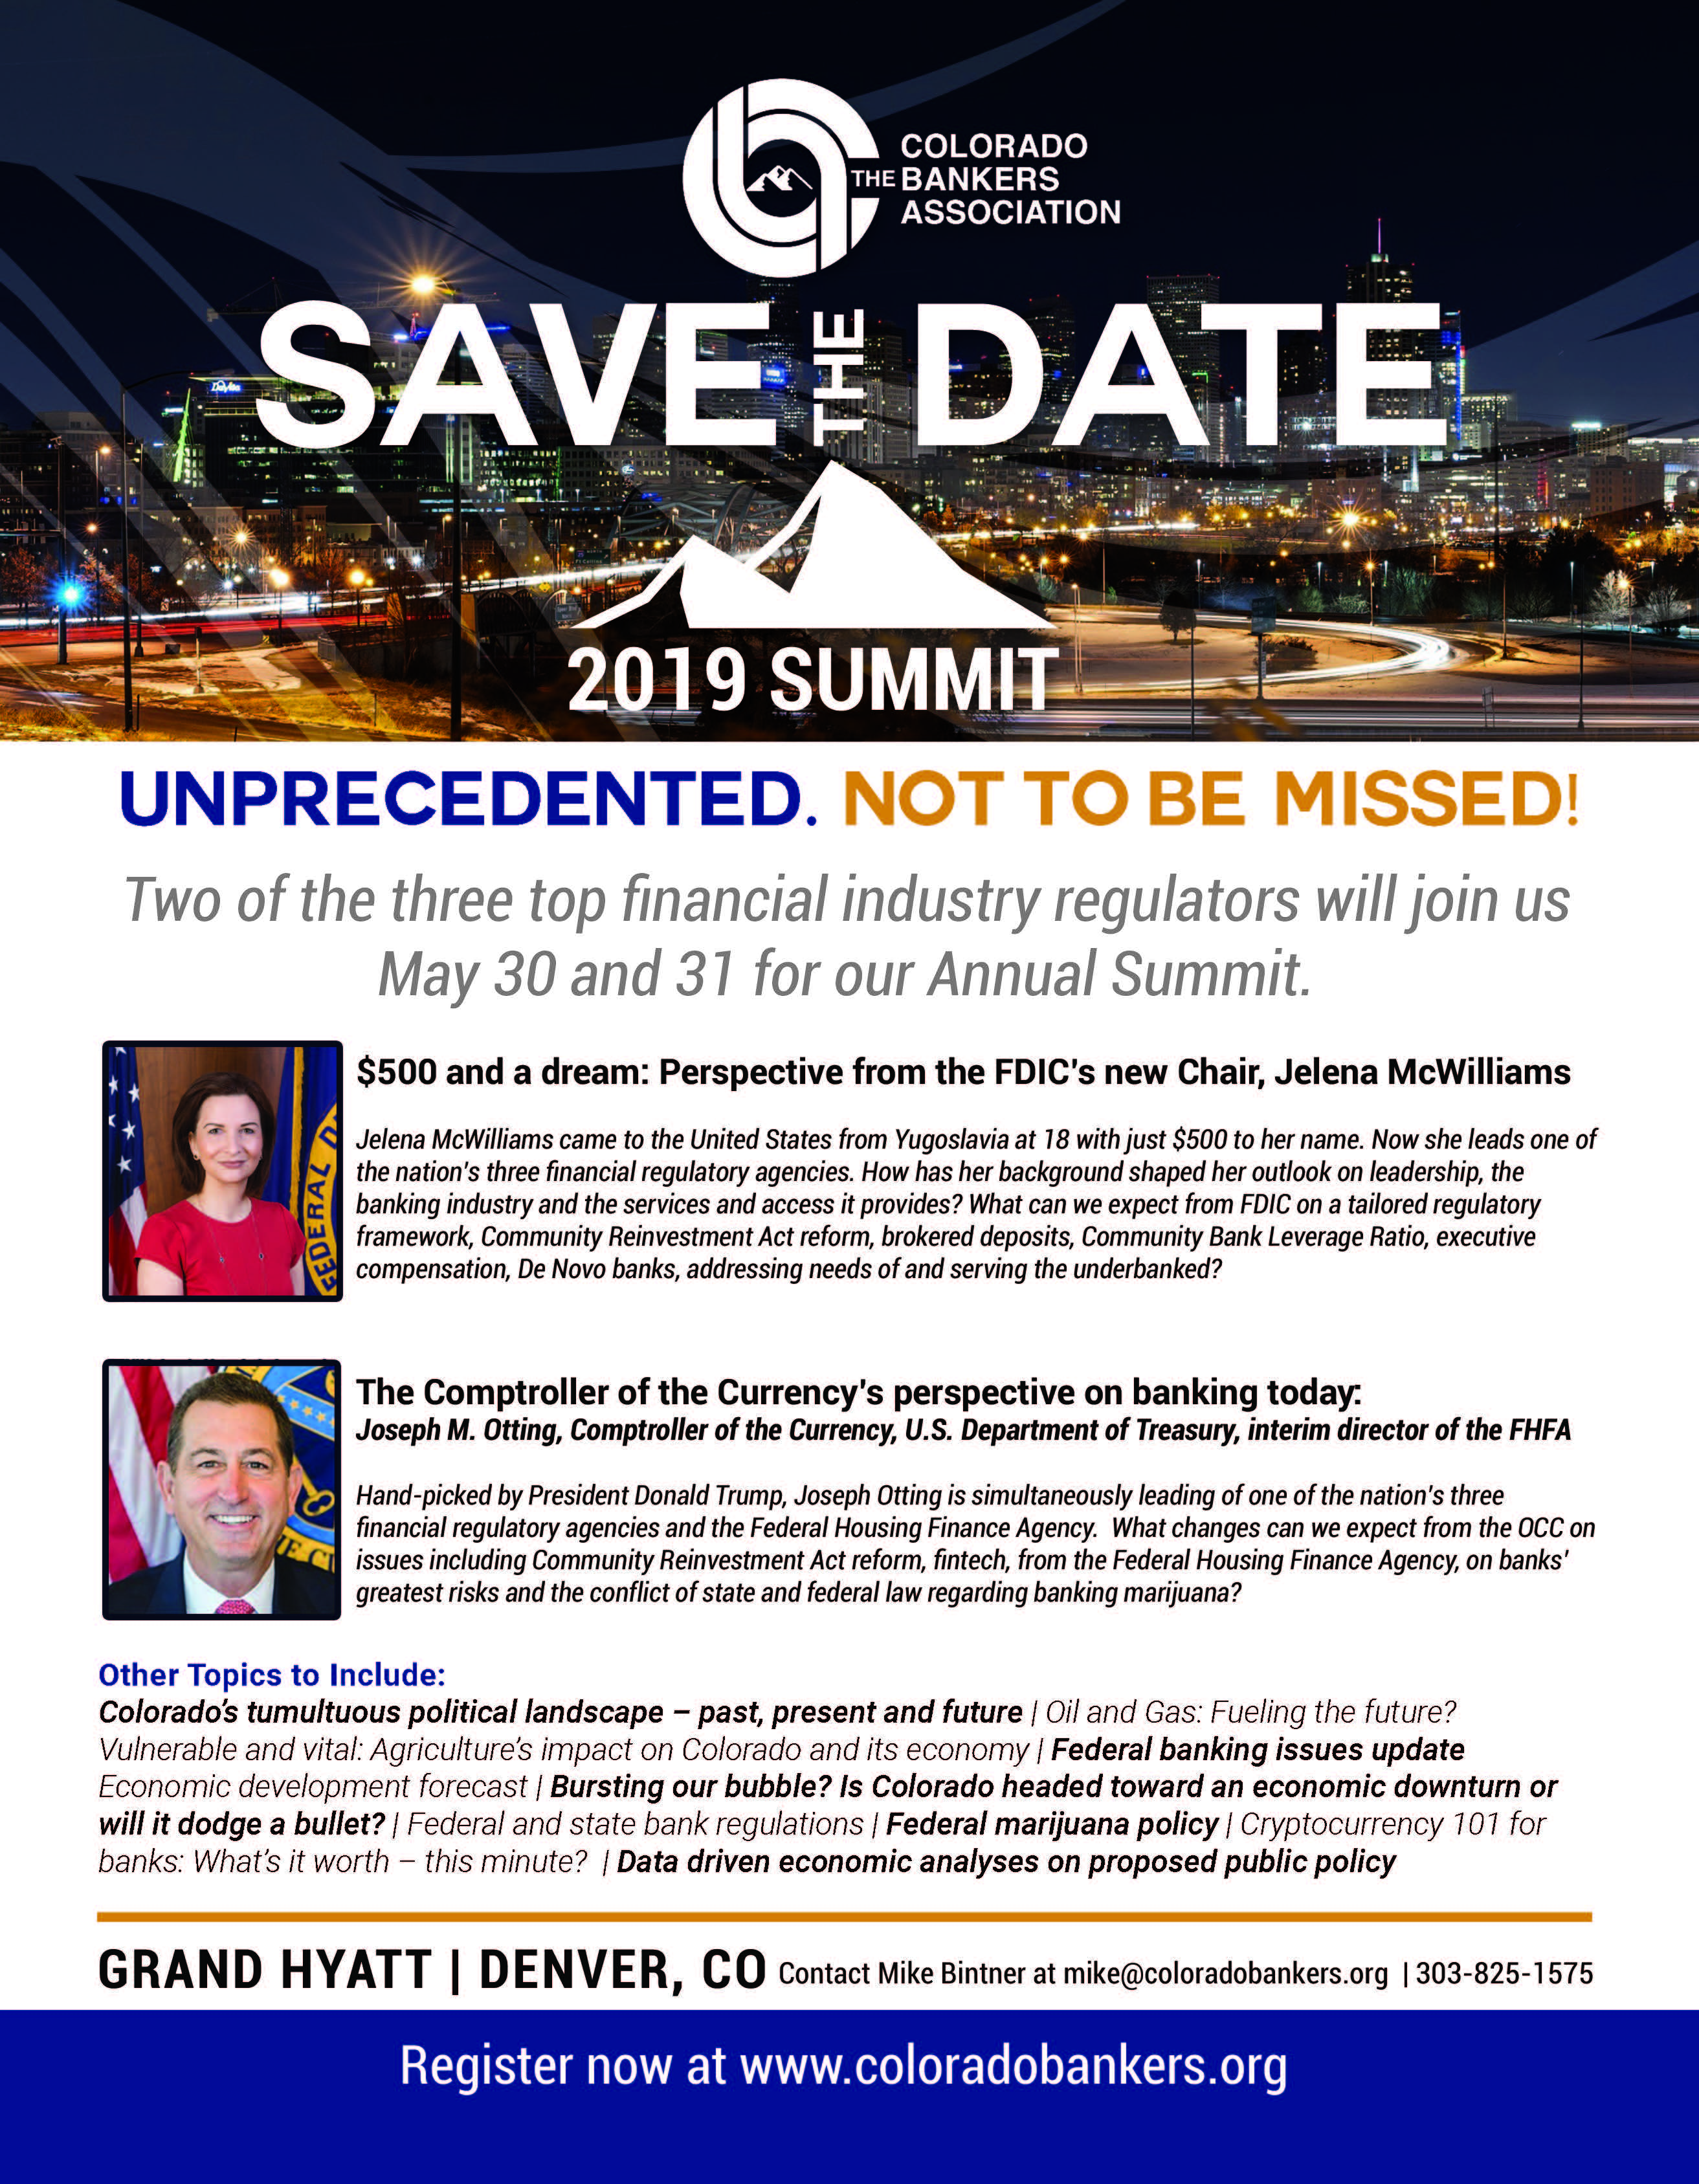 The Comptroller of the Currency and the FDIC Chairman will join CBA for our annual summit on May 30.